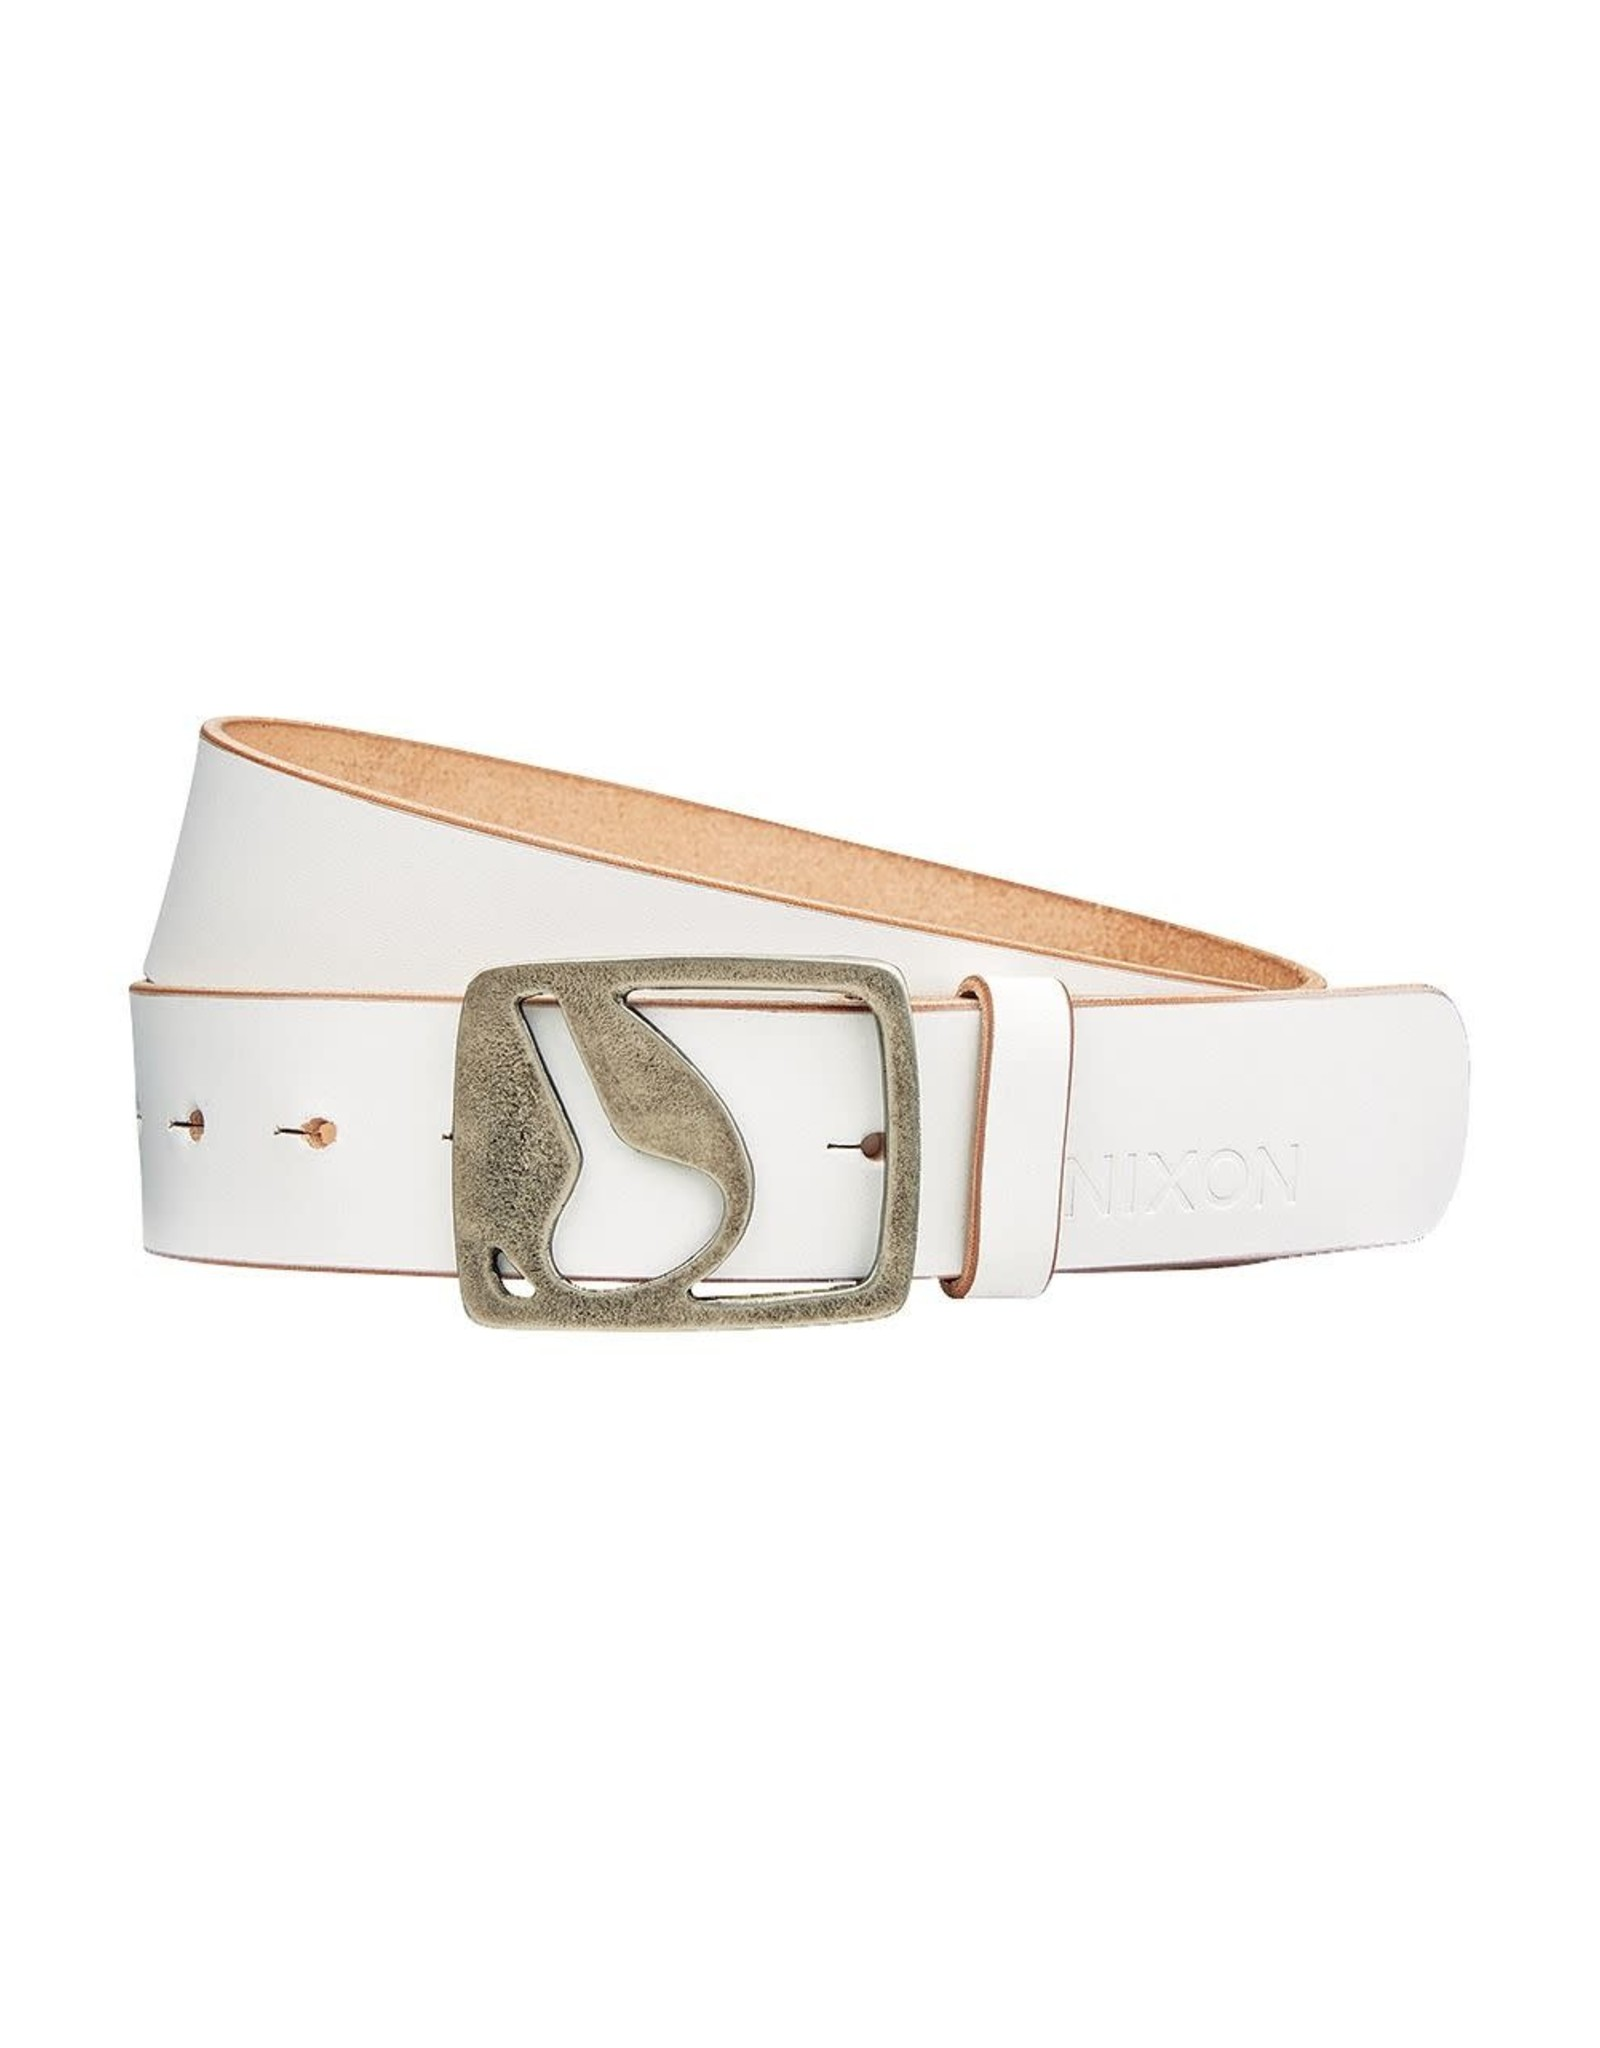 nixon Nixon - ceinture cut-out